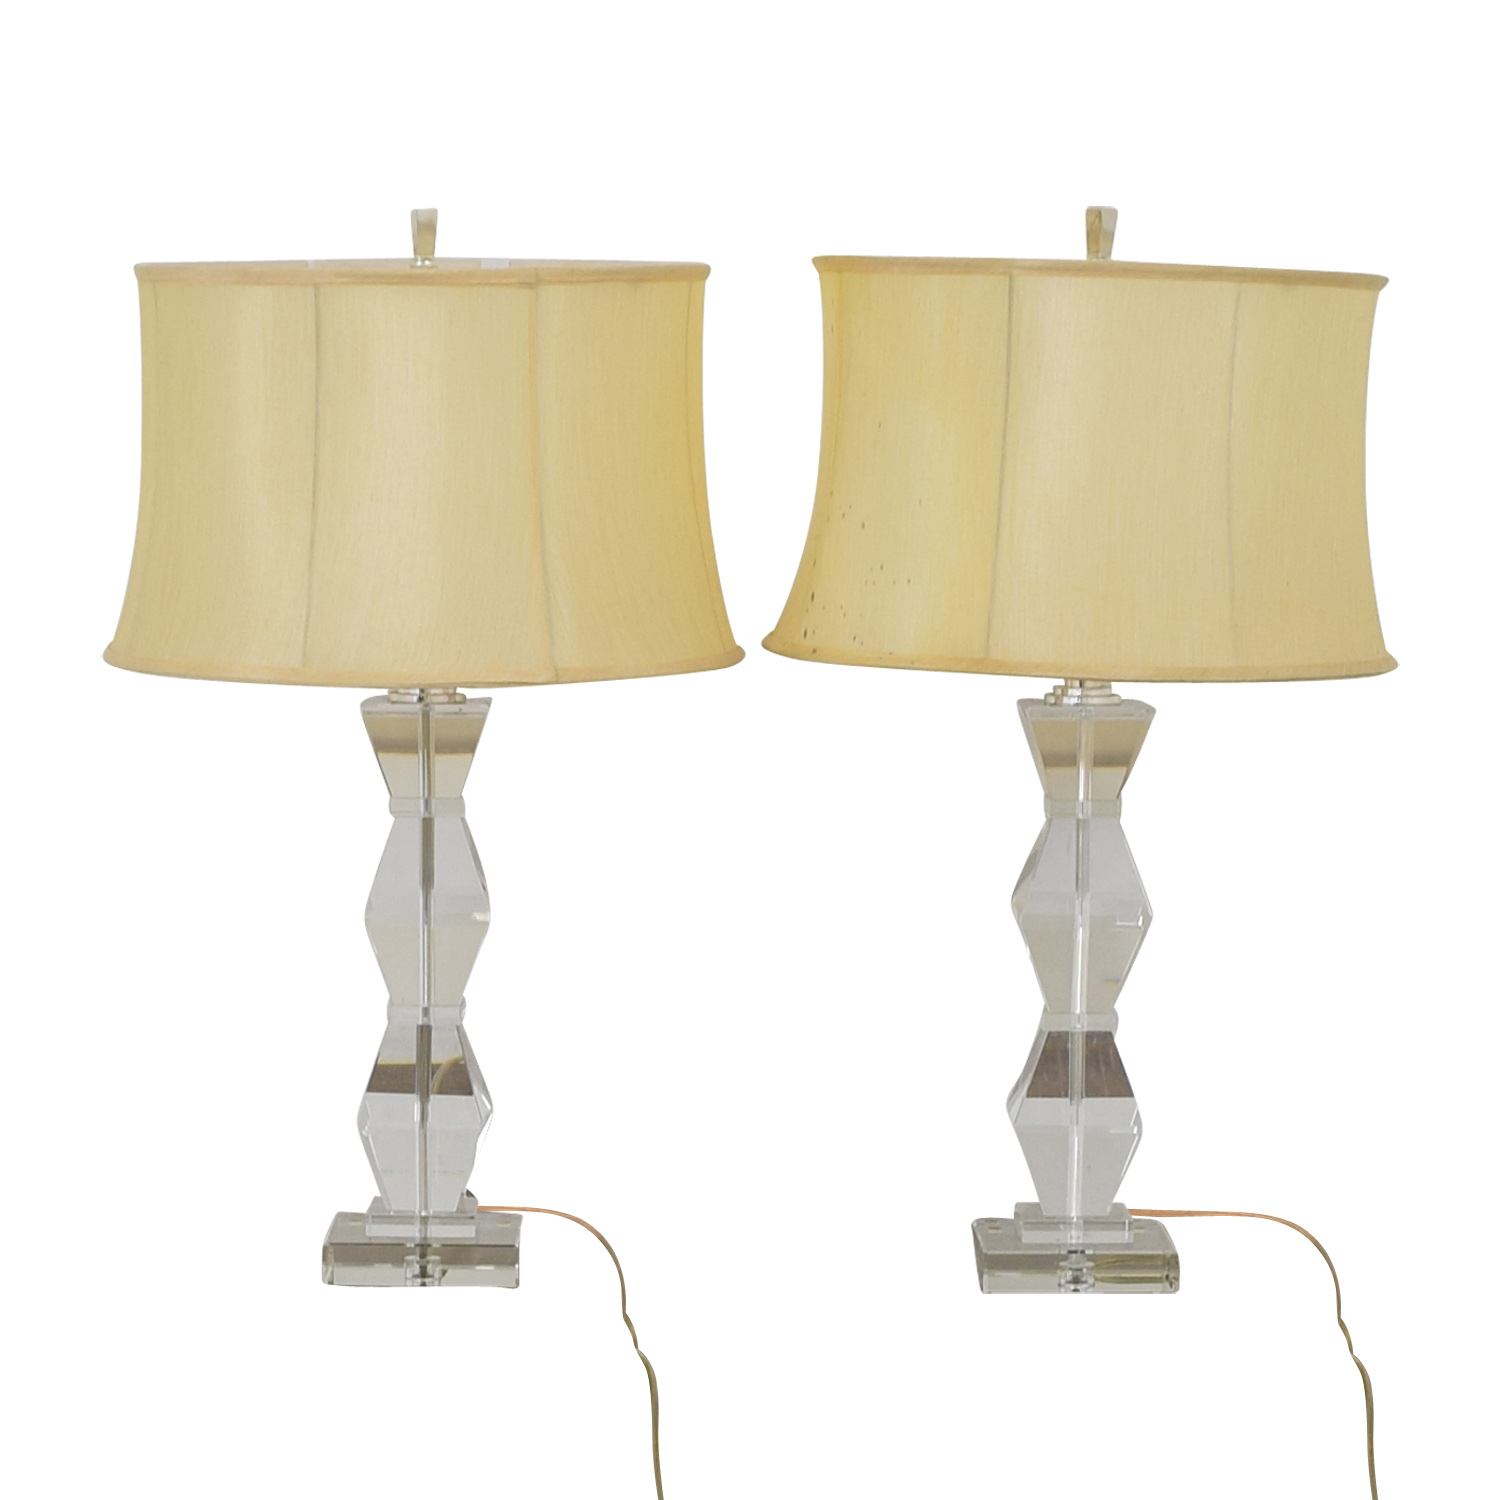 Ethan Allen Ethan Allen Geometric Crystal Table Lamps white